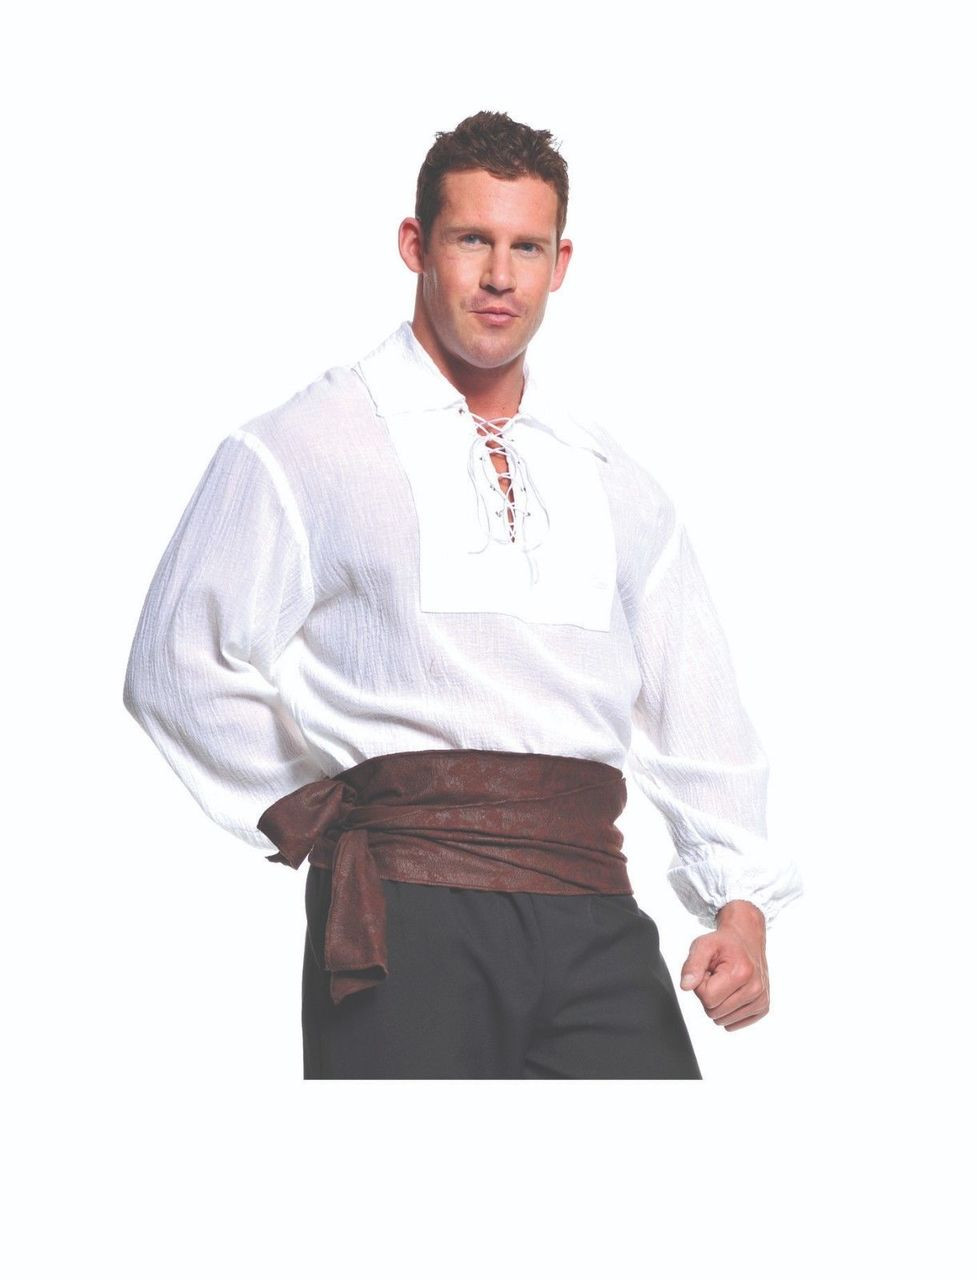 33a78e9d184 Underwraps Pirate Shirt White Nautical Lace Adult Mens Halloween Costume  29302